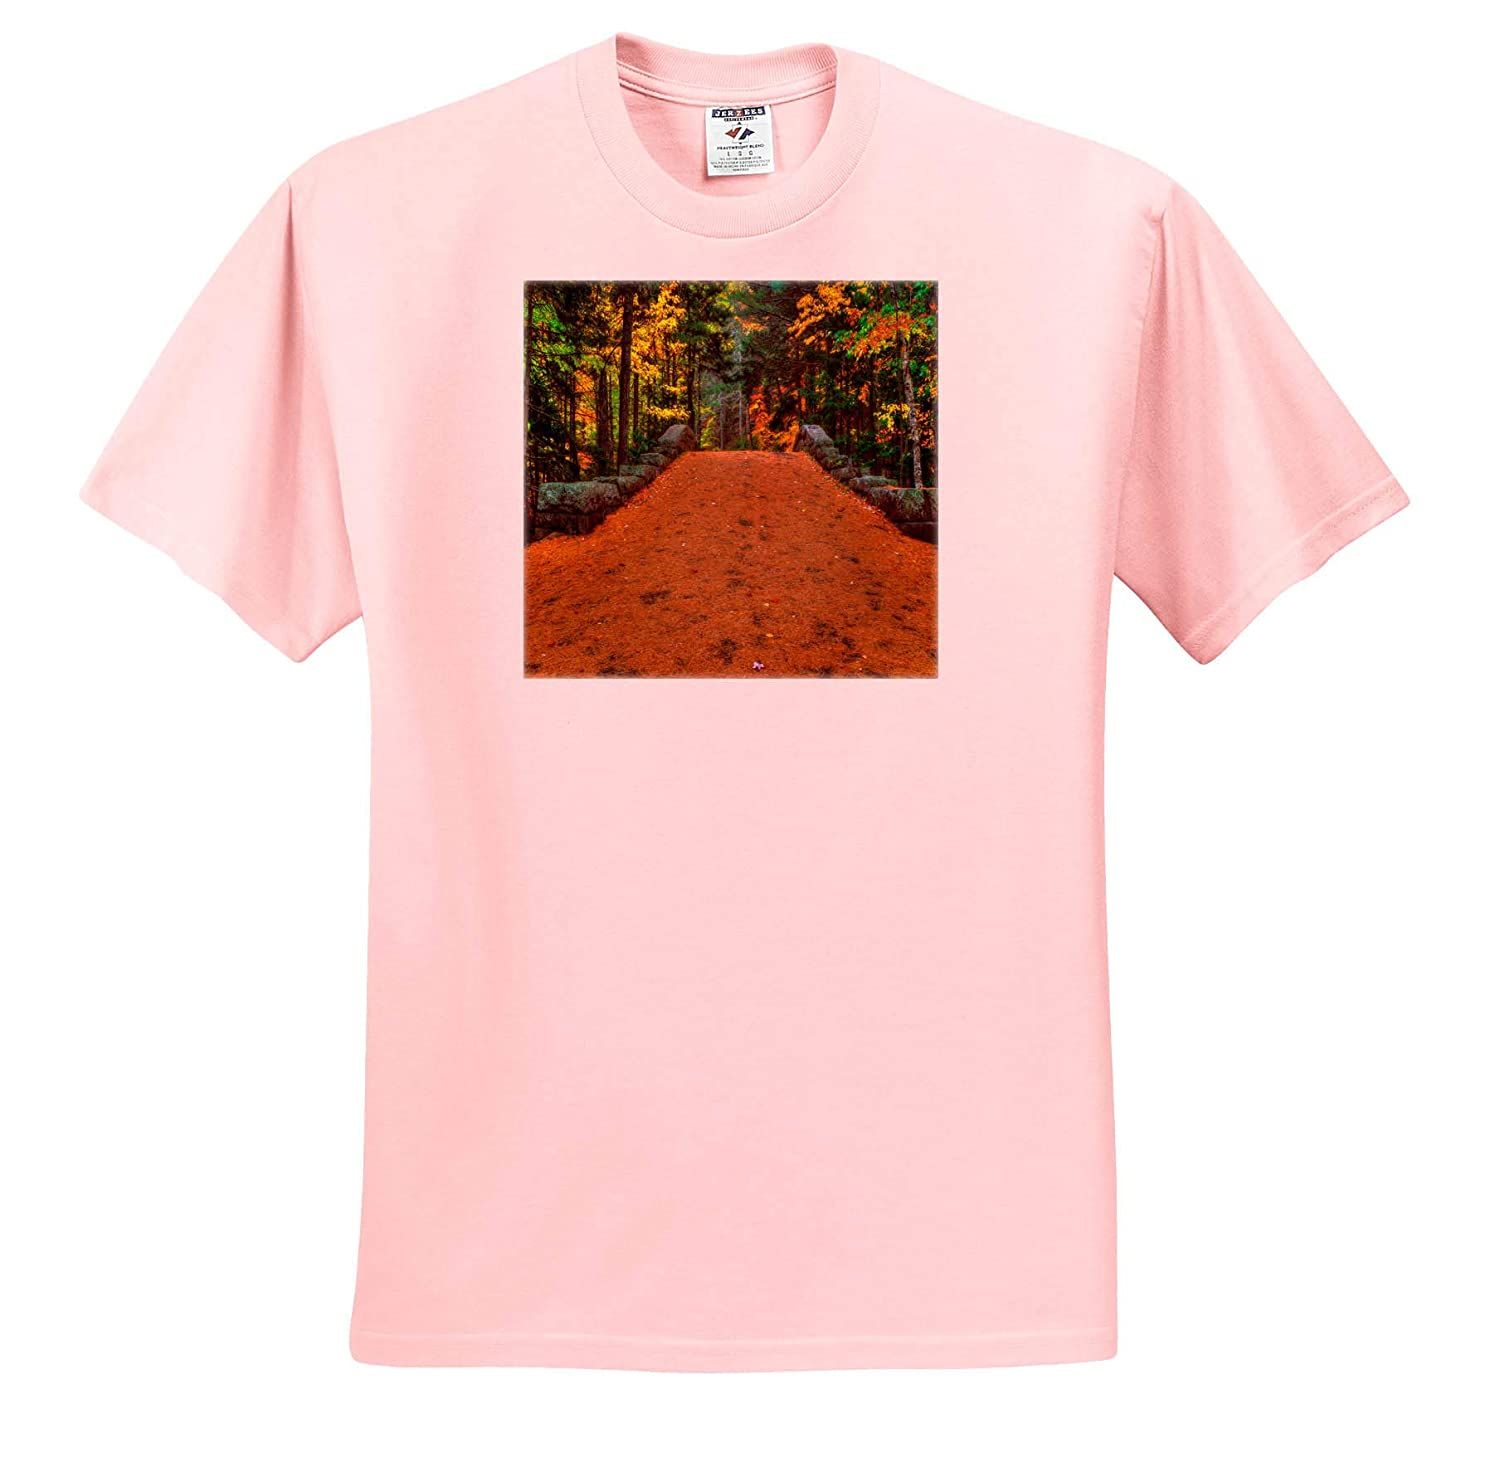 Landscapes Trail Through The Forest Adult T-Shirt XL 3dRose Mike Swindle Photography ts/_317148